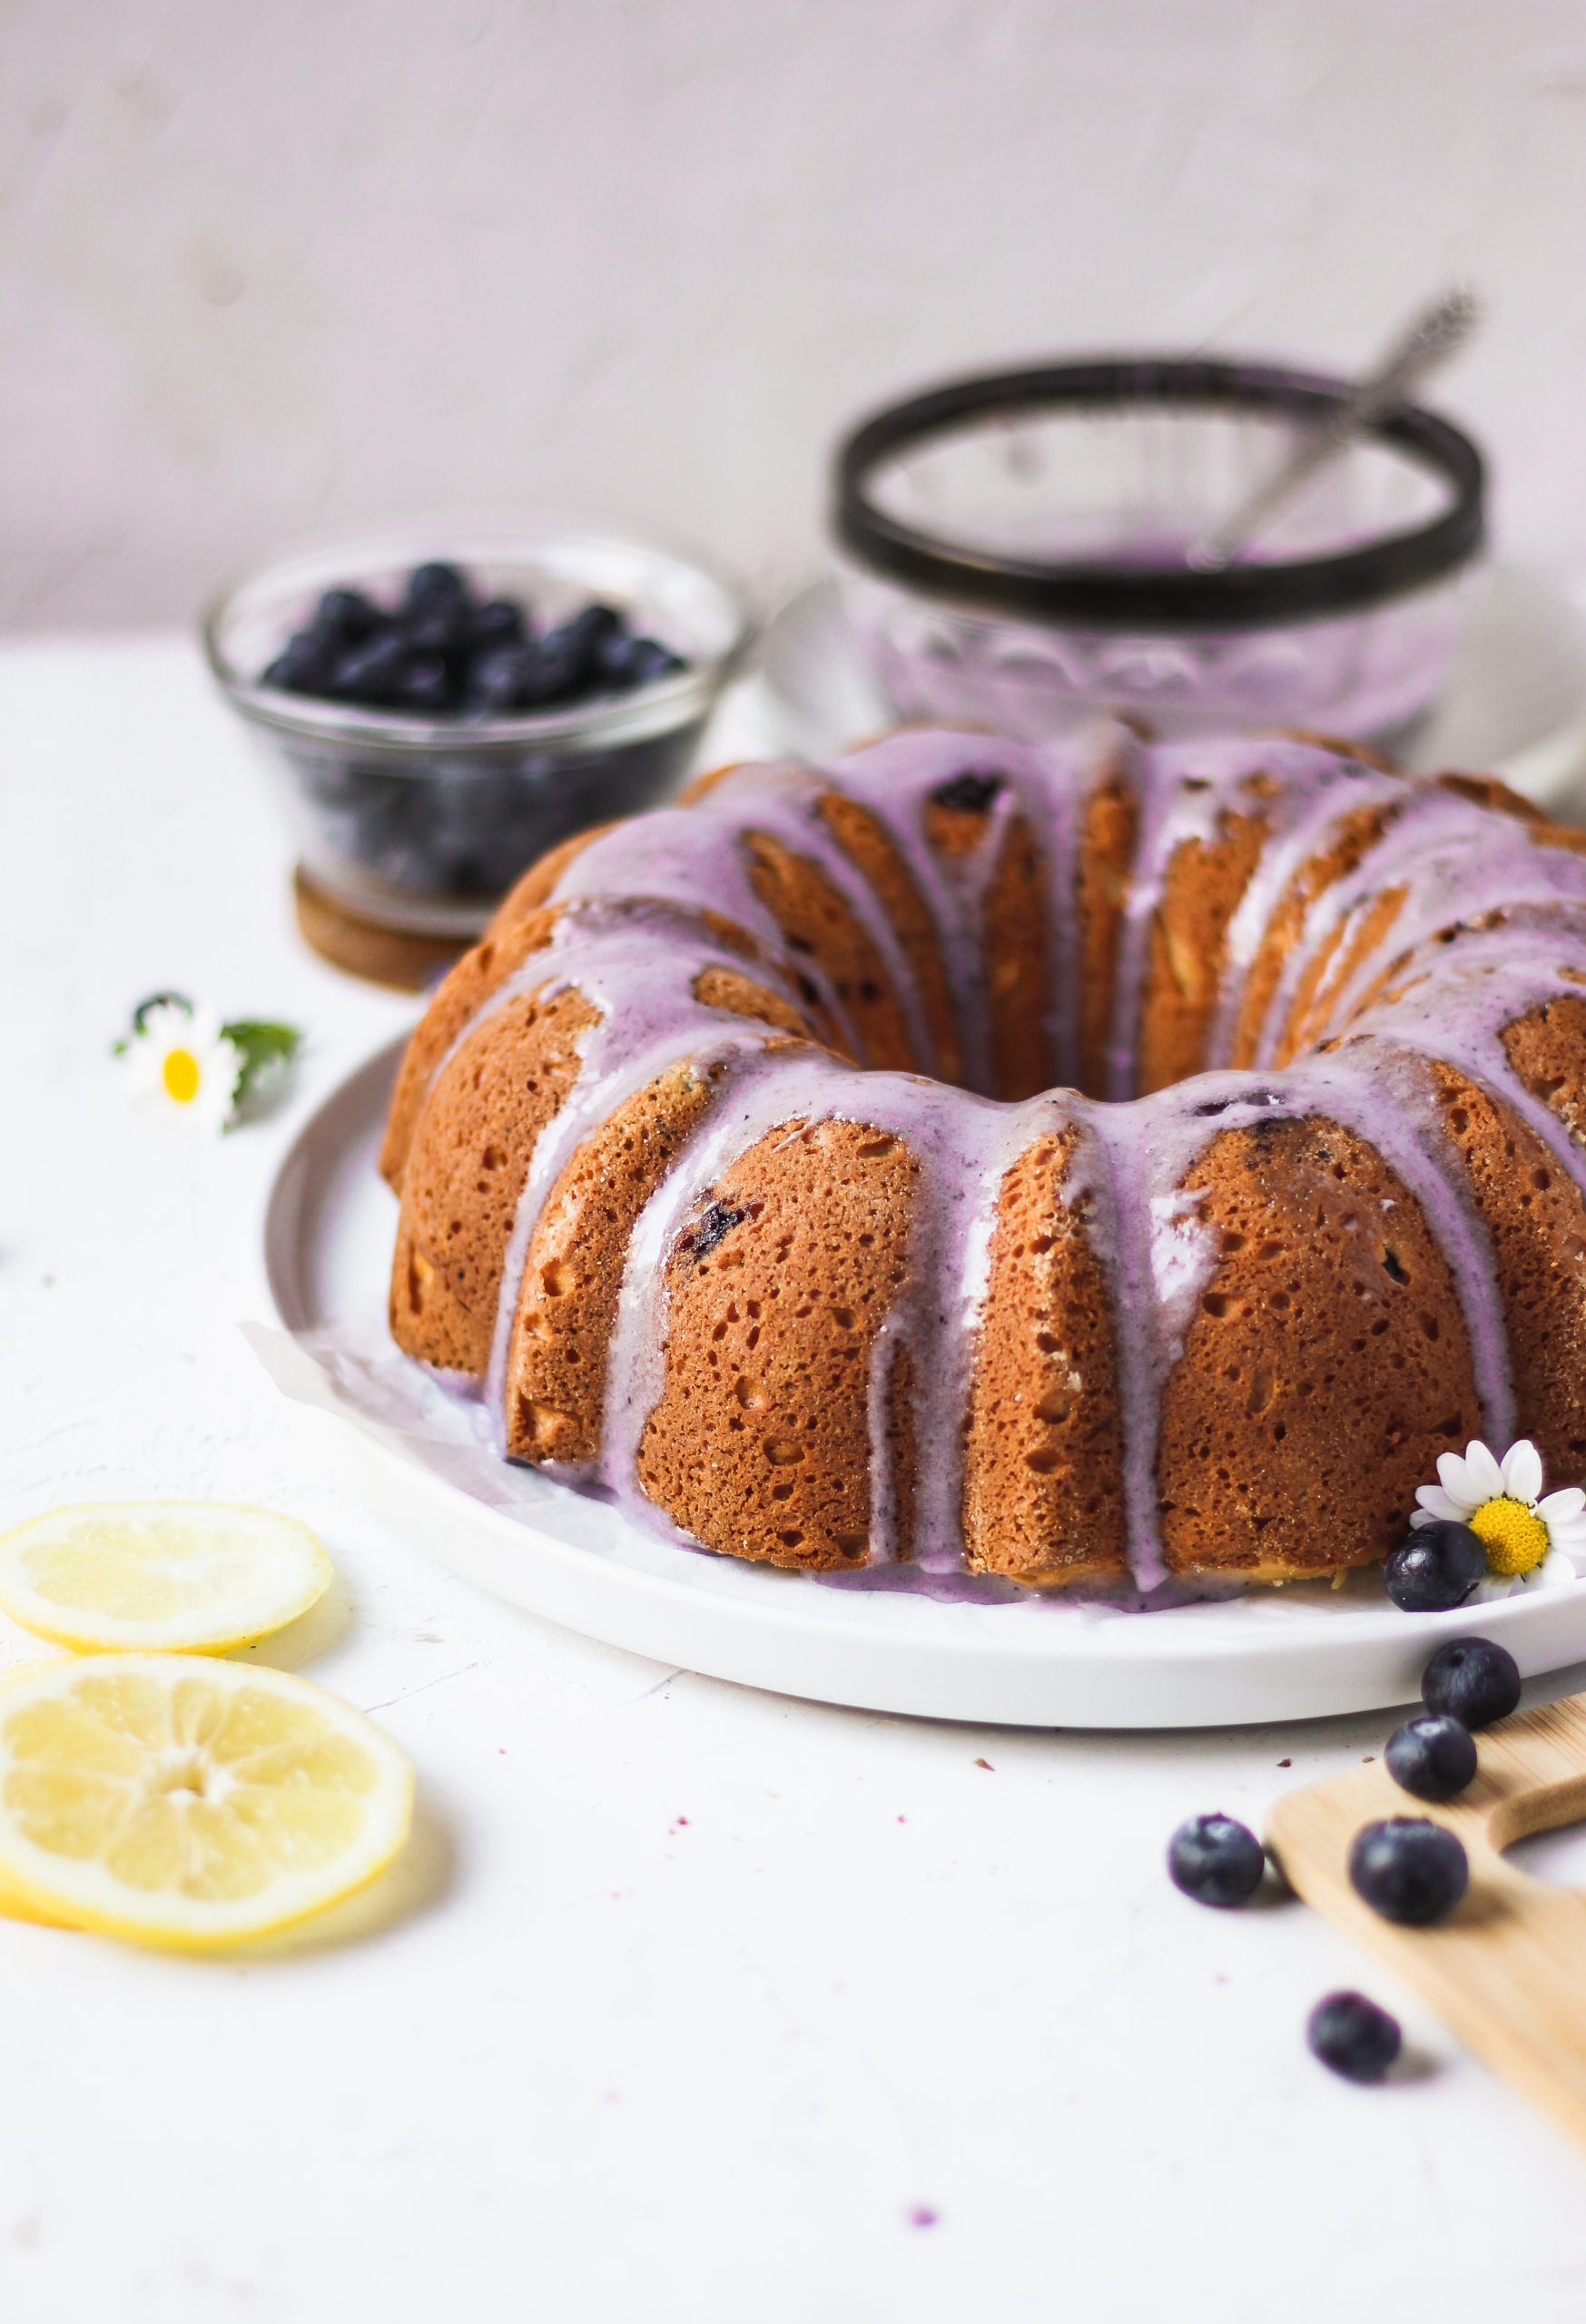 fluffy lemon blueberry bundt cake with purple blueberry glaze